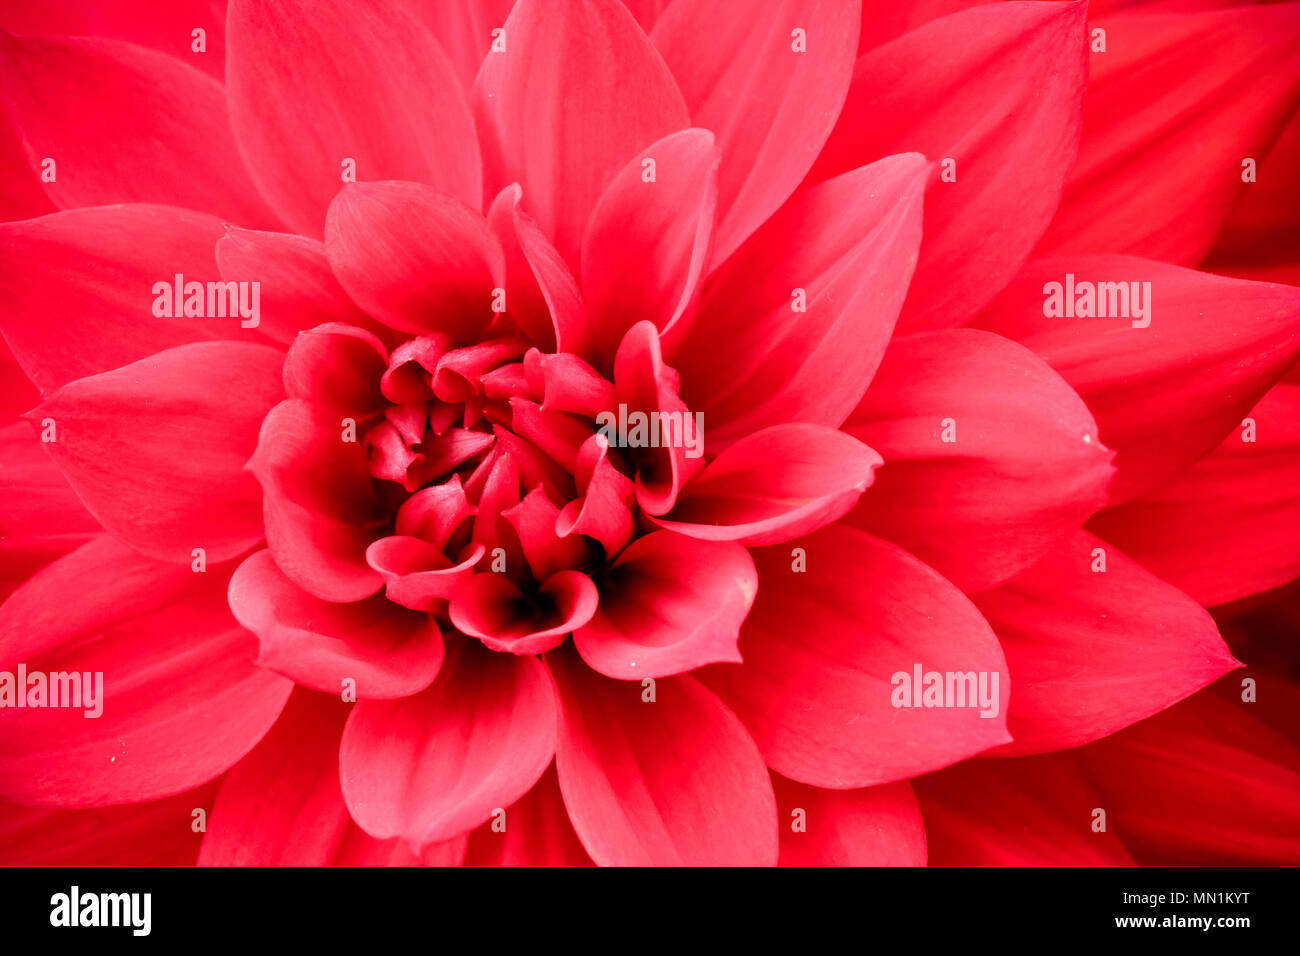 Blooming red pink dahlia flower macro photo picture in color blooming red pink dahlia flower macro photo picture in color emphasizing the pink colours and reddish shadows in a intricate geometric pattern izmirmasajfo